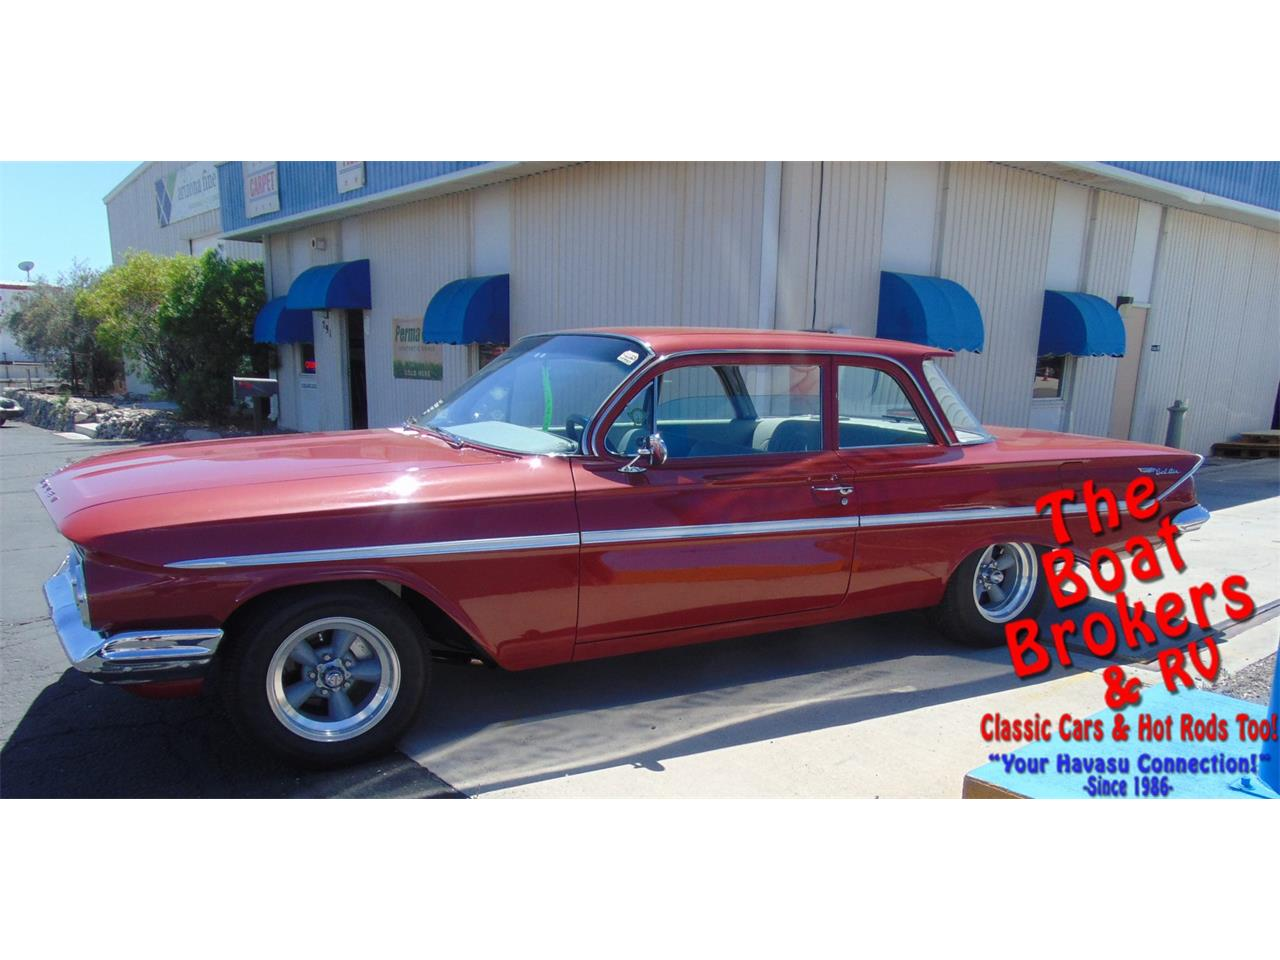 Large Picture of Classic 1961 Bel Air Offered by The Boat Brokers - PXT2